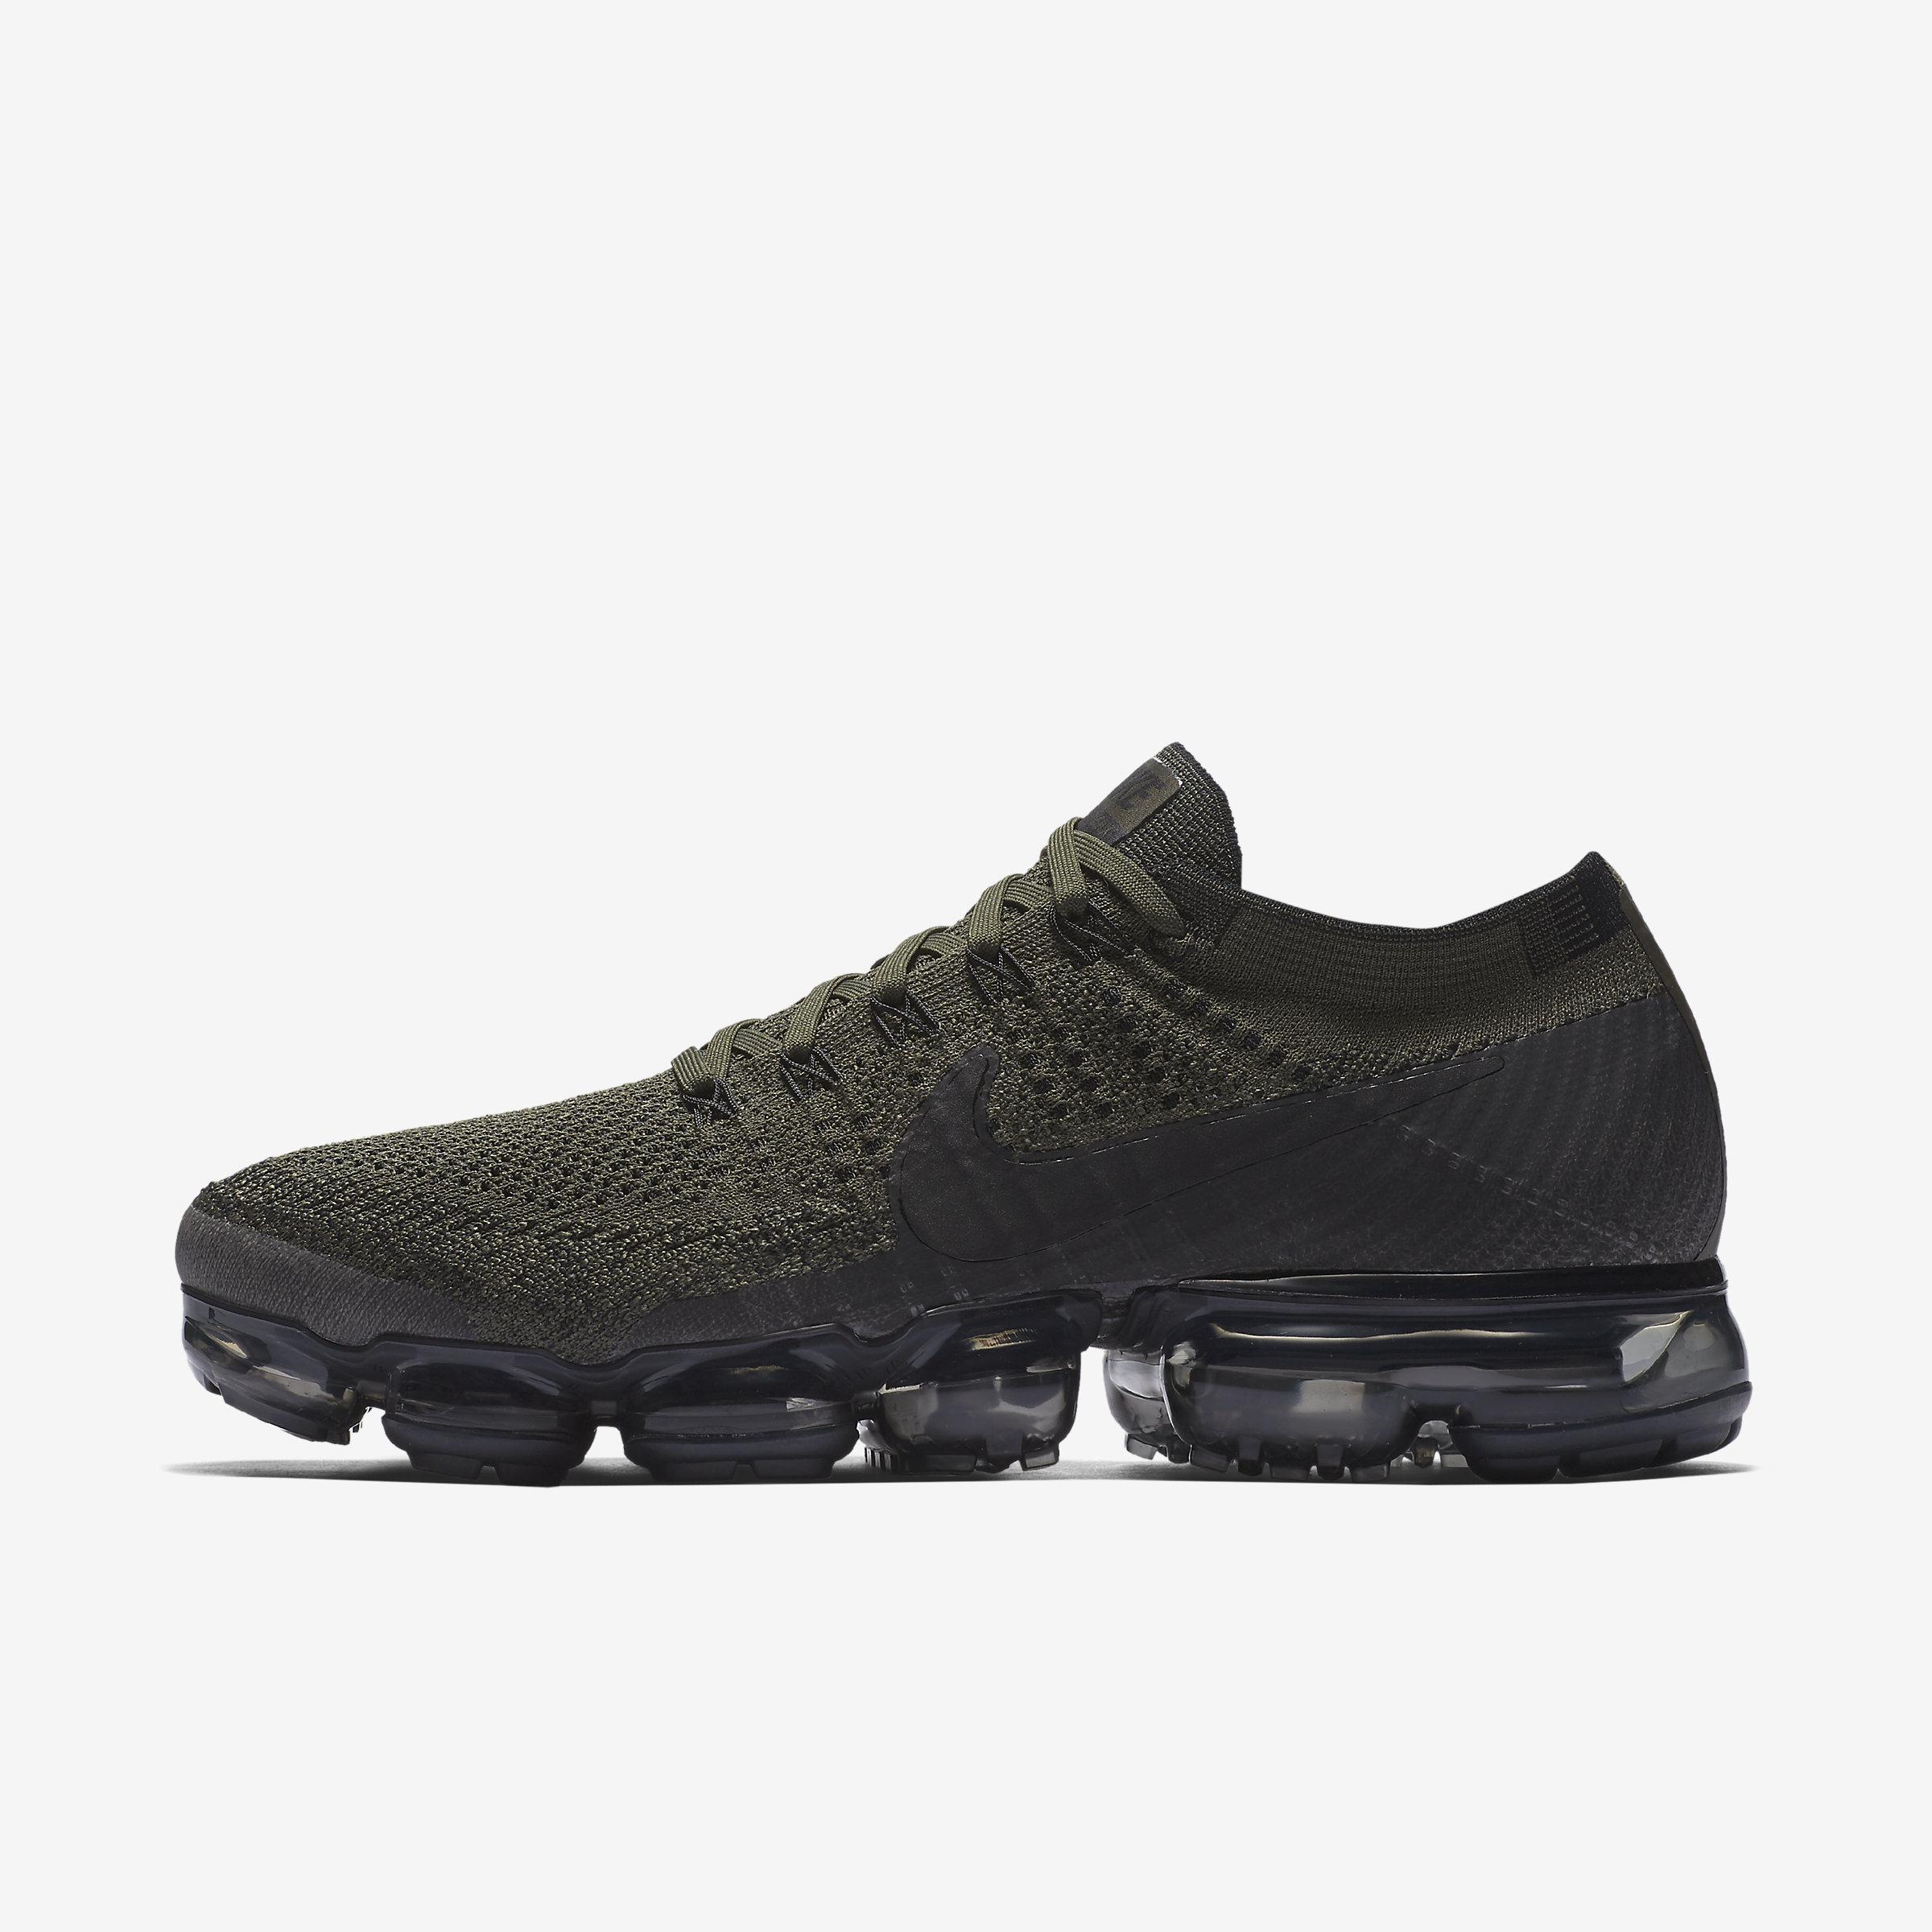 6b09cee8f2688 Nike - Multicolor Air Vapormax Flyknit for Men - Lyst